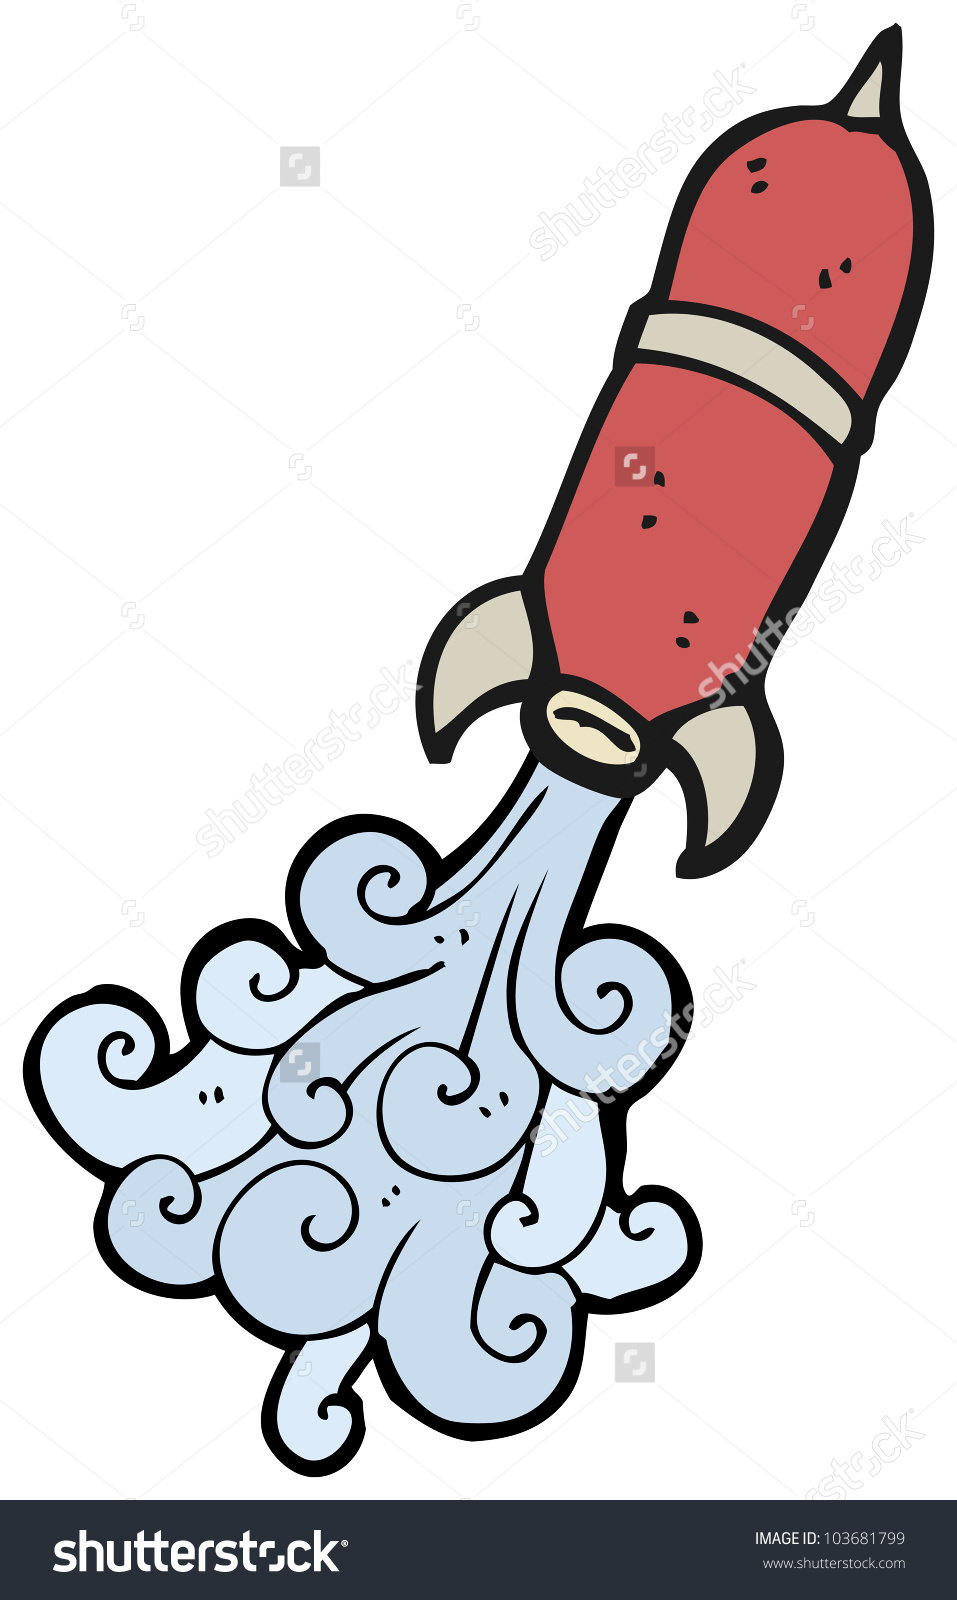 Cartoon Water Rocket Stock Illustration 103681799.